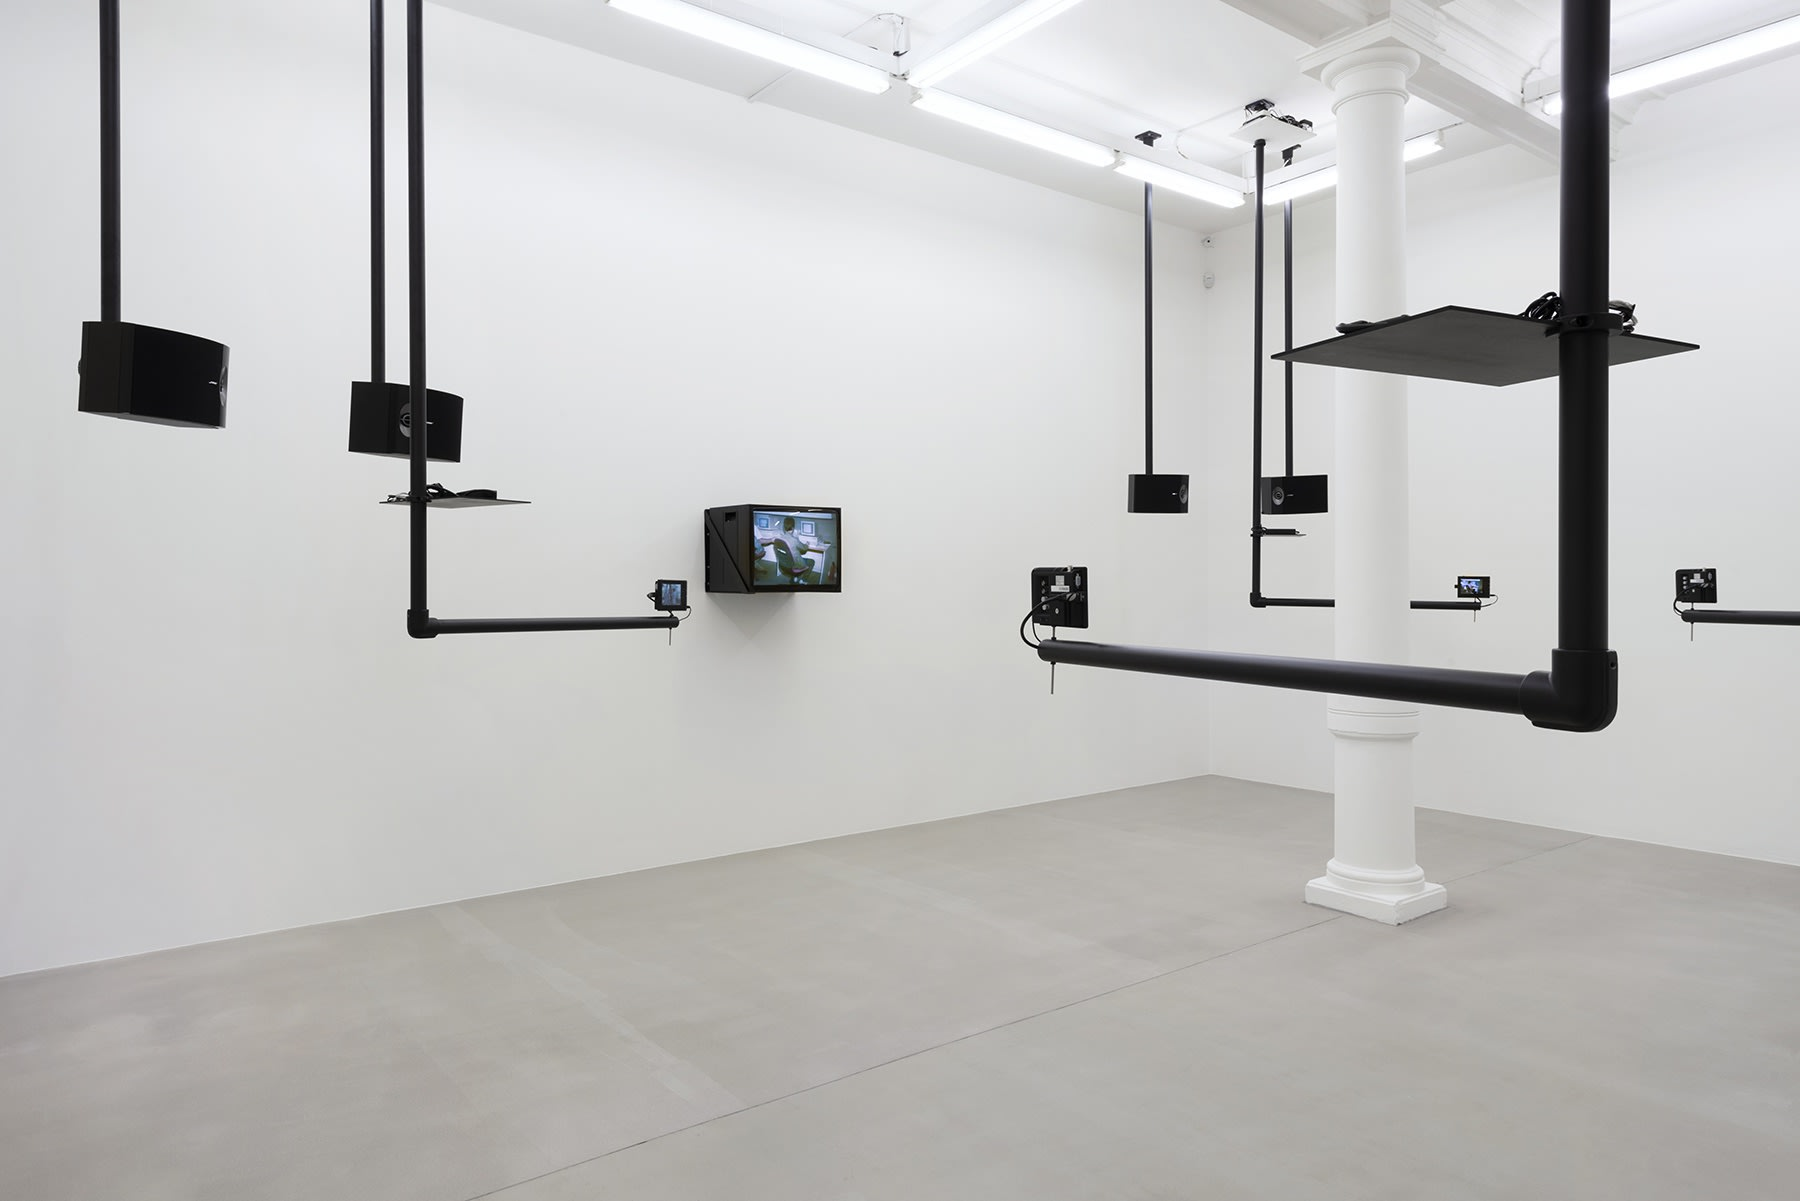 Black pipes attached to the ceiling at right angles hold various sized monitors.